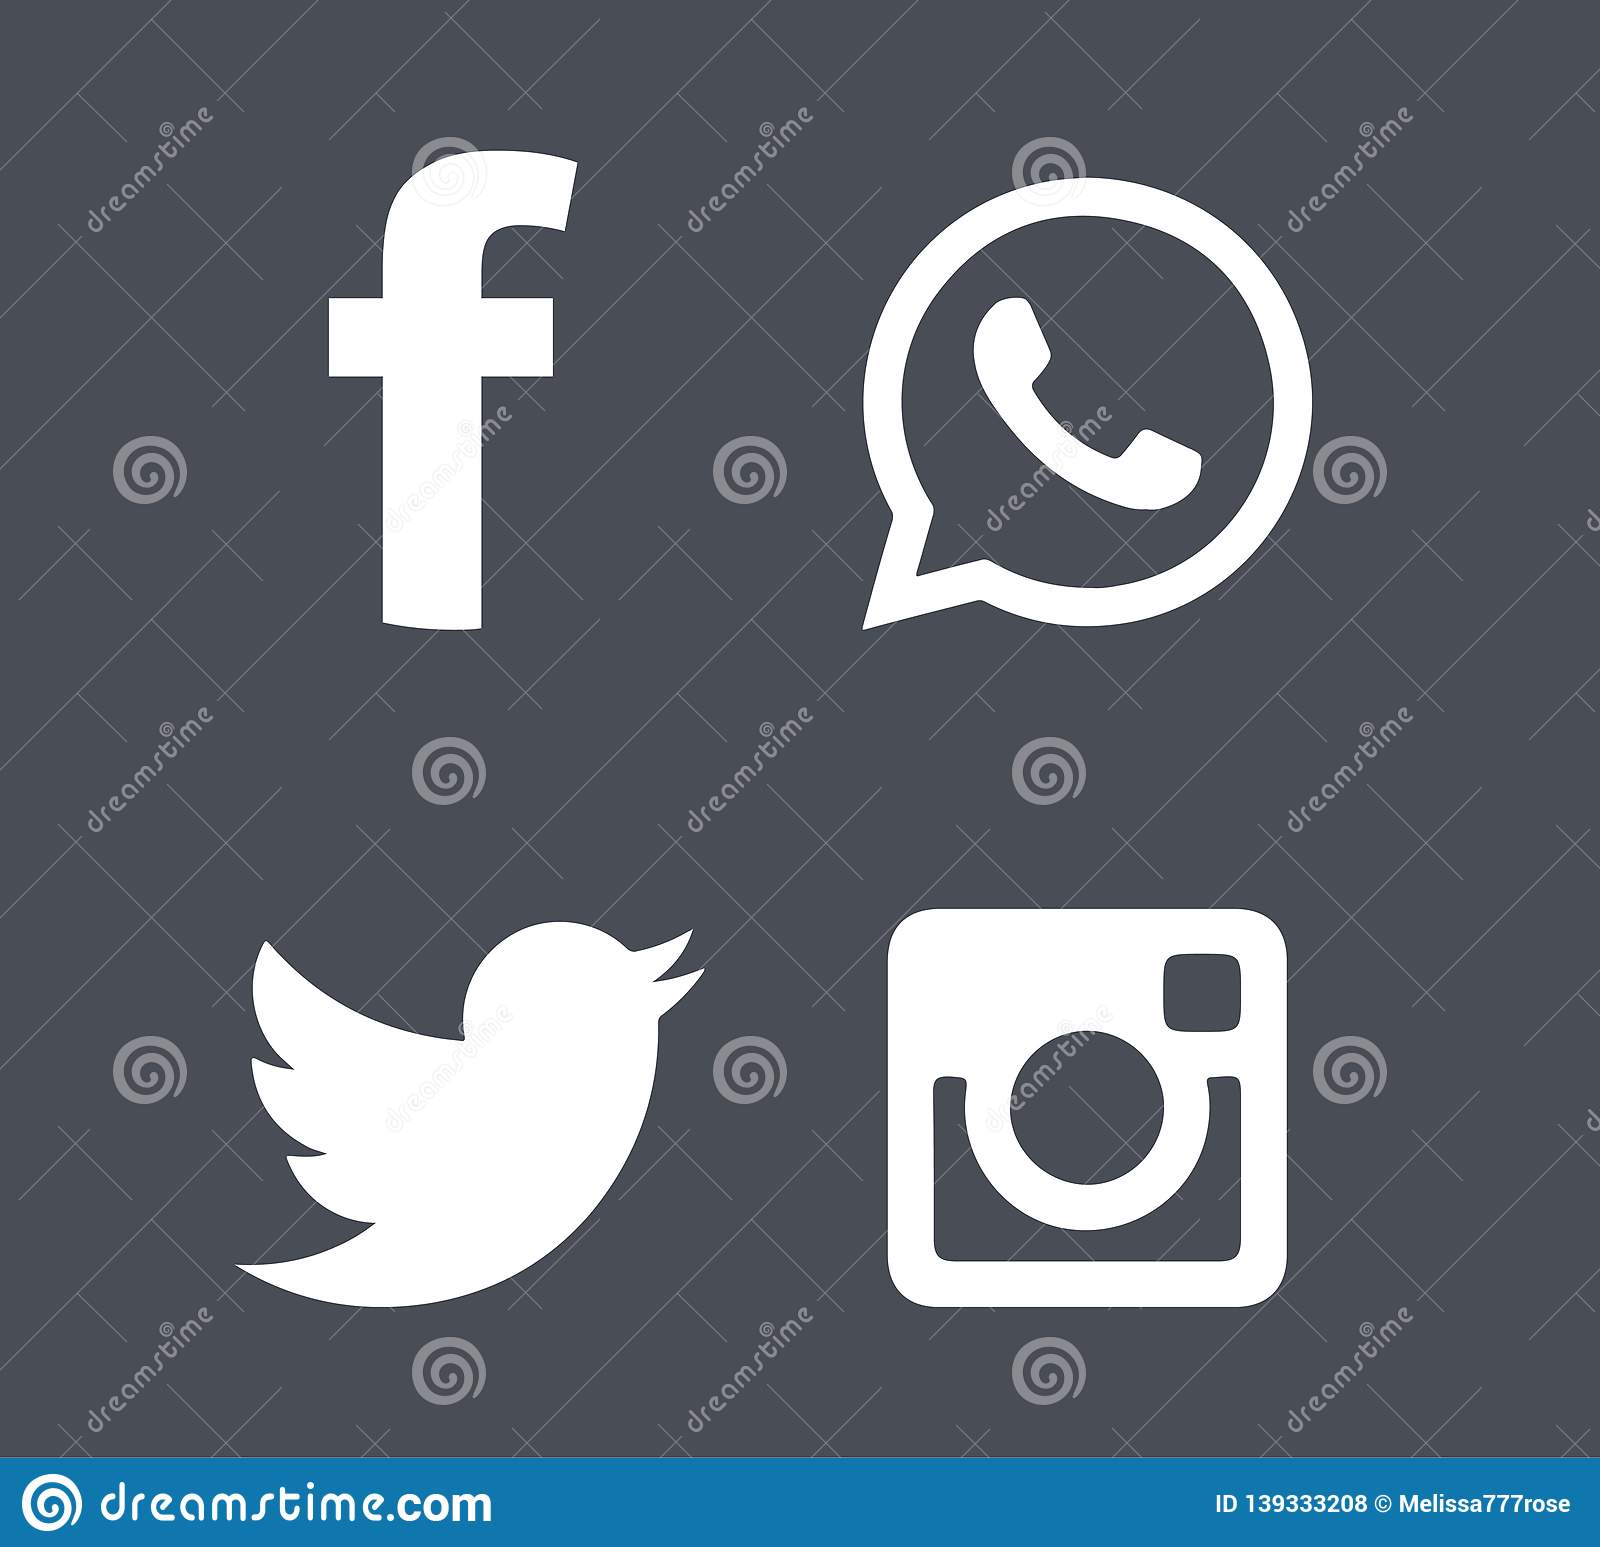 Social media icons in grey background